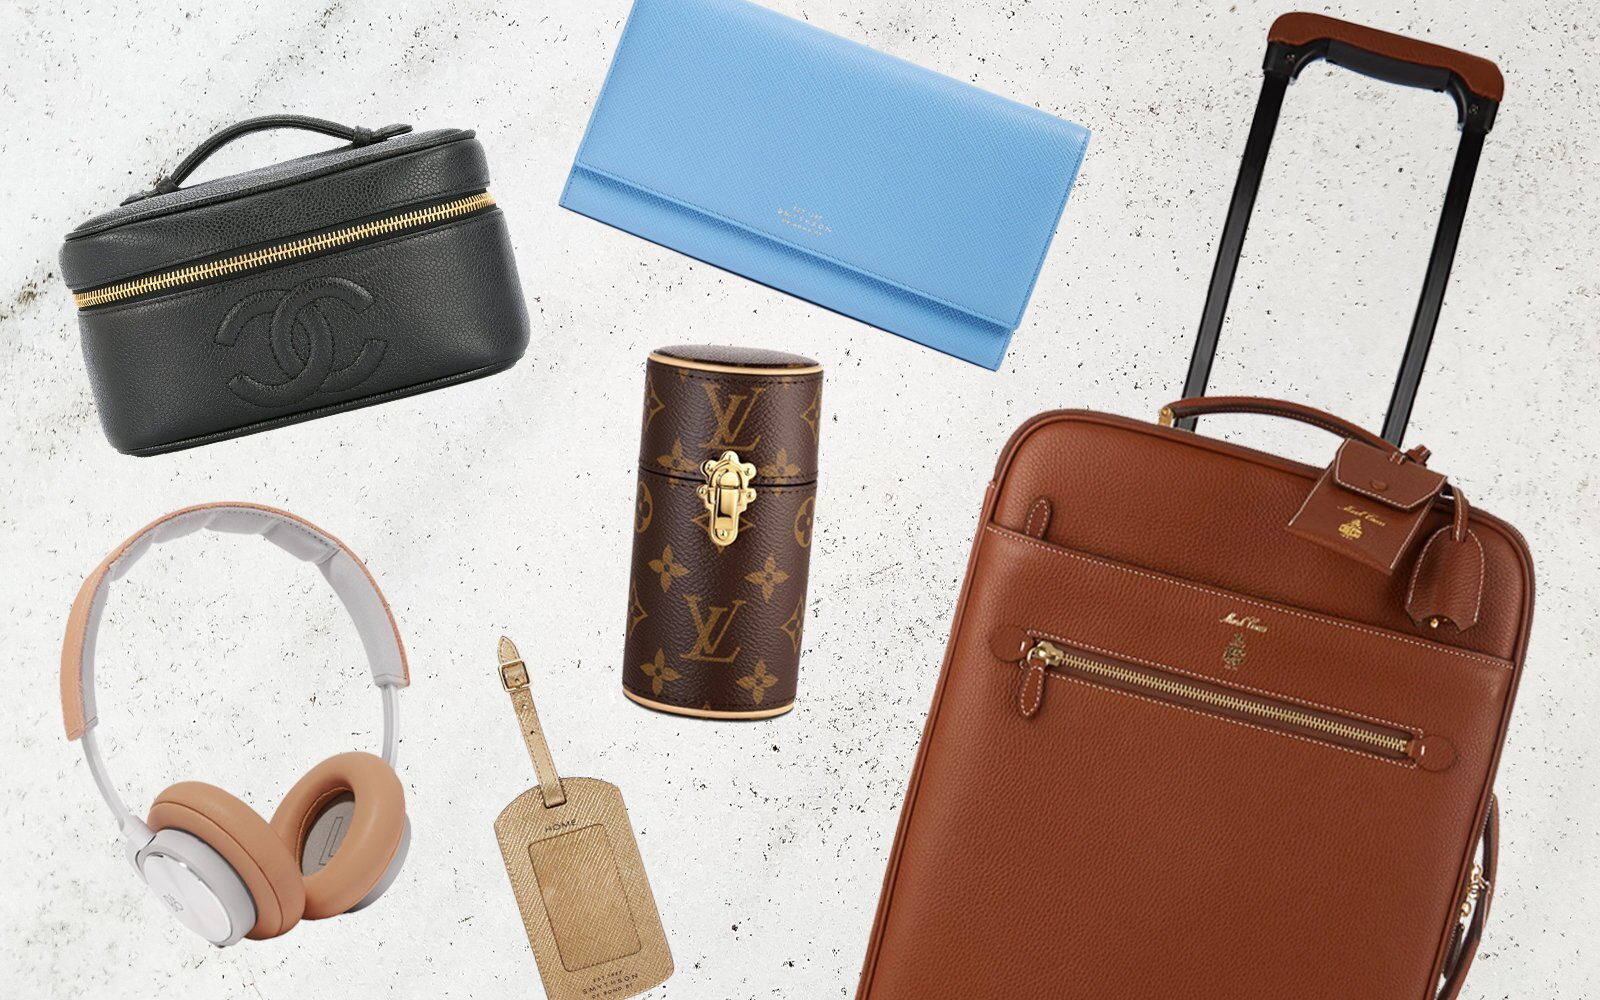 7f5f81982594 The 10 Luxury Travel Accessories That Are Actually Worth It | Travel ...